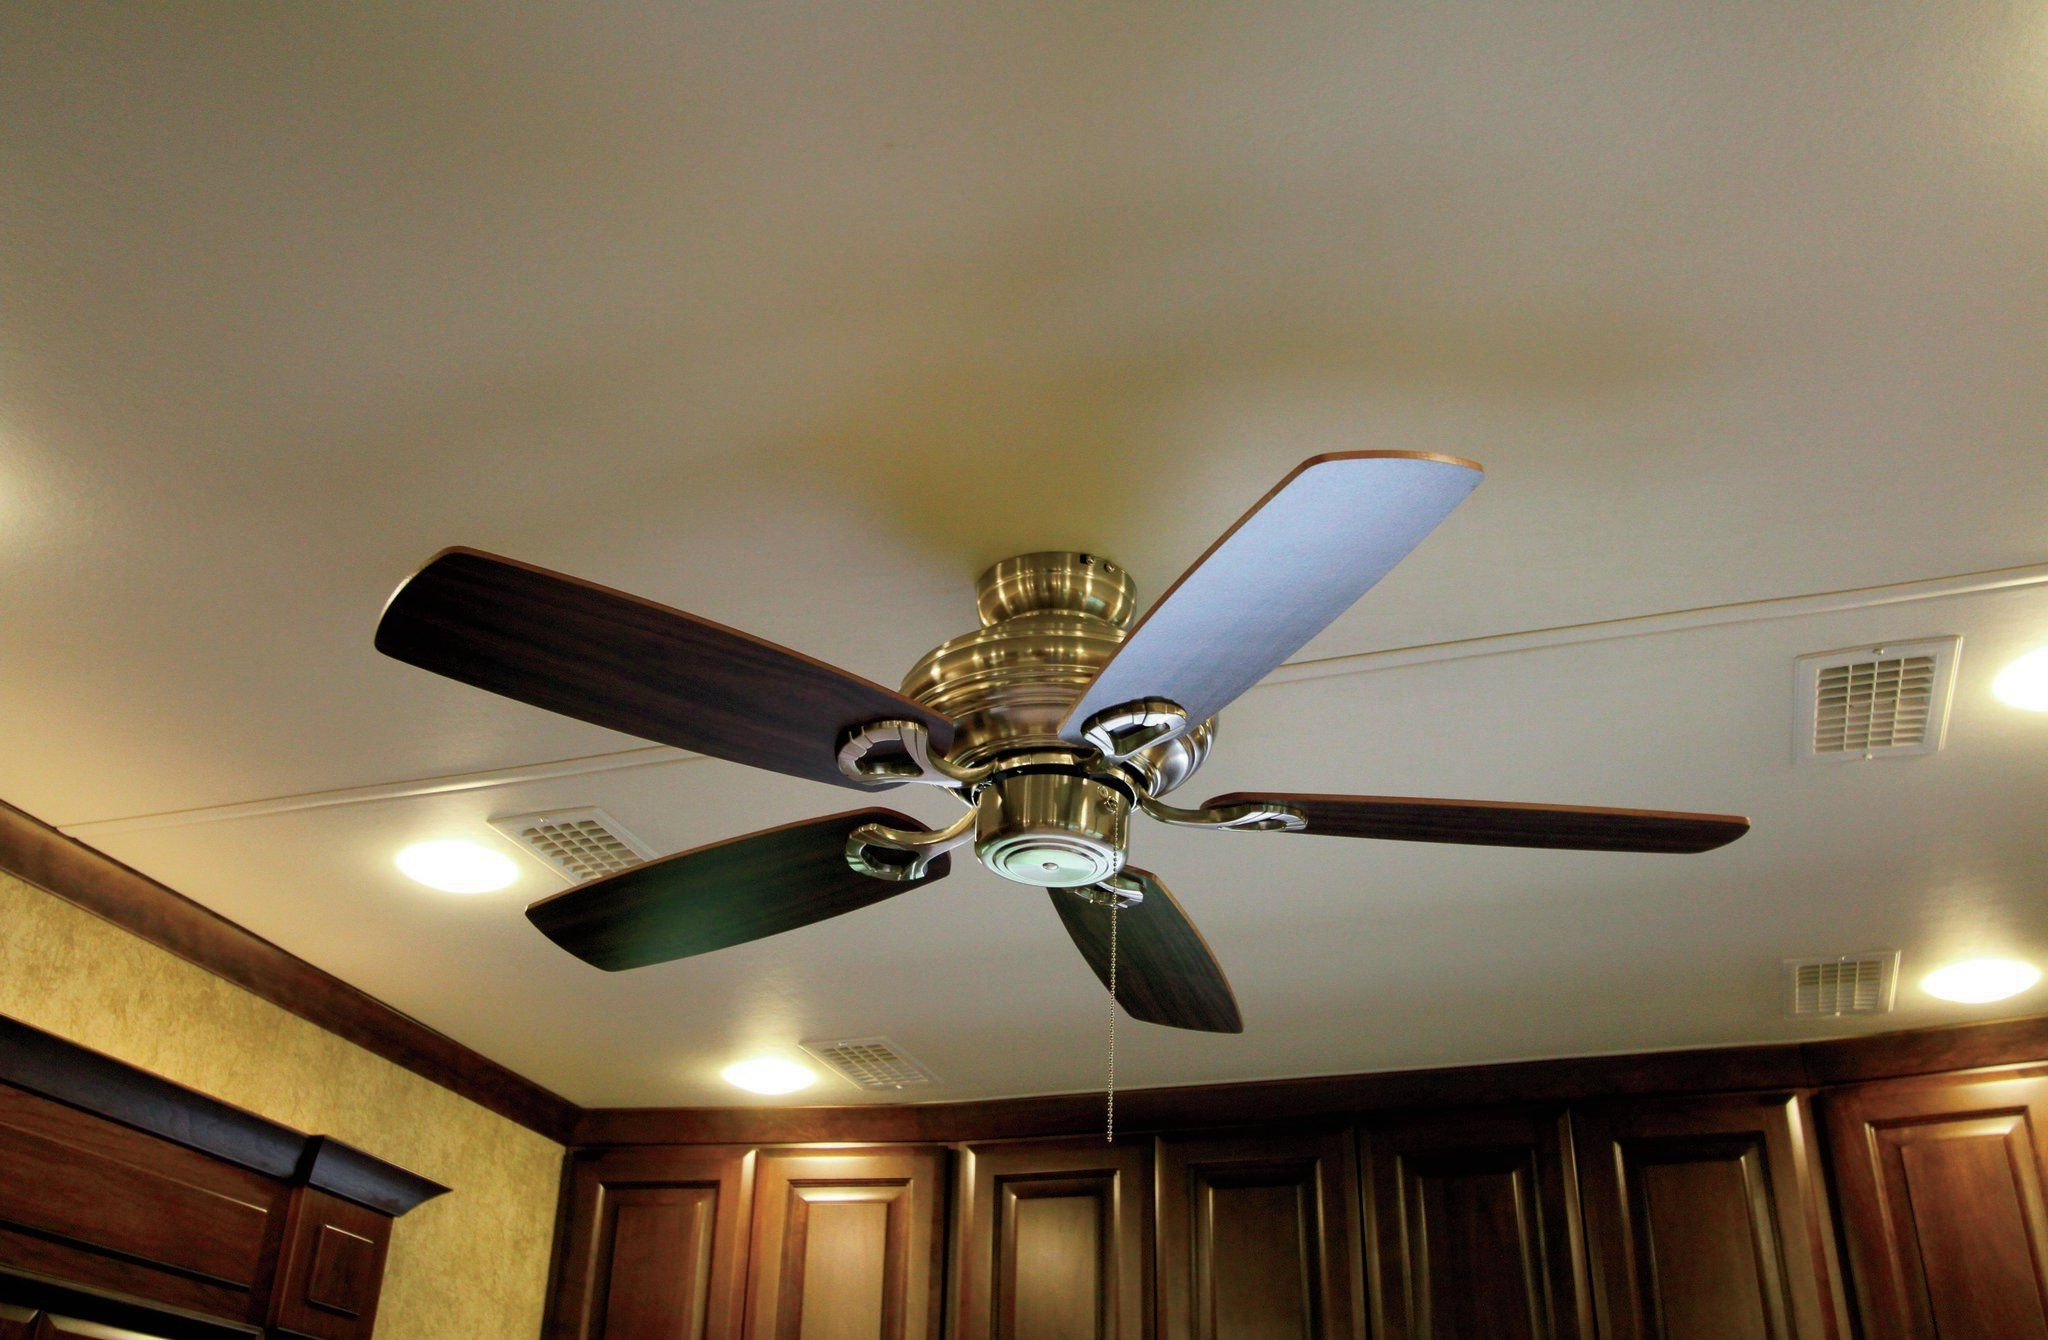 Bedroom Bedroom Ceiling Fans With Remote 44 Inch Outdoor Ceiling With Widely Used 44 Inch Outdoor Ceiling Fans With Lights (View 5 of 20)